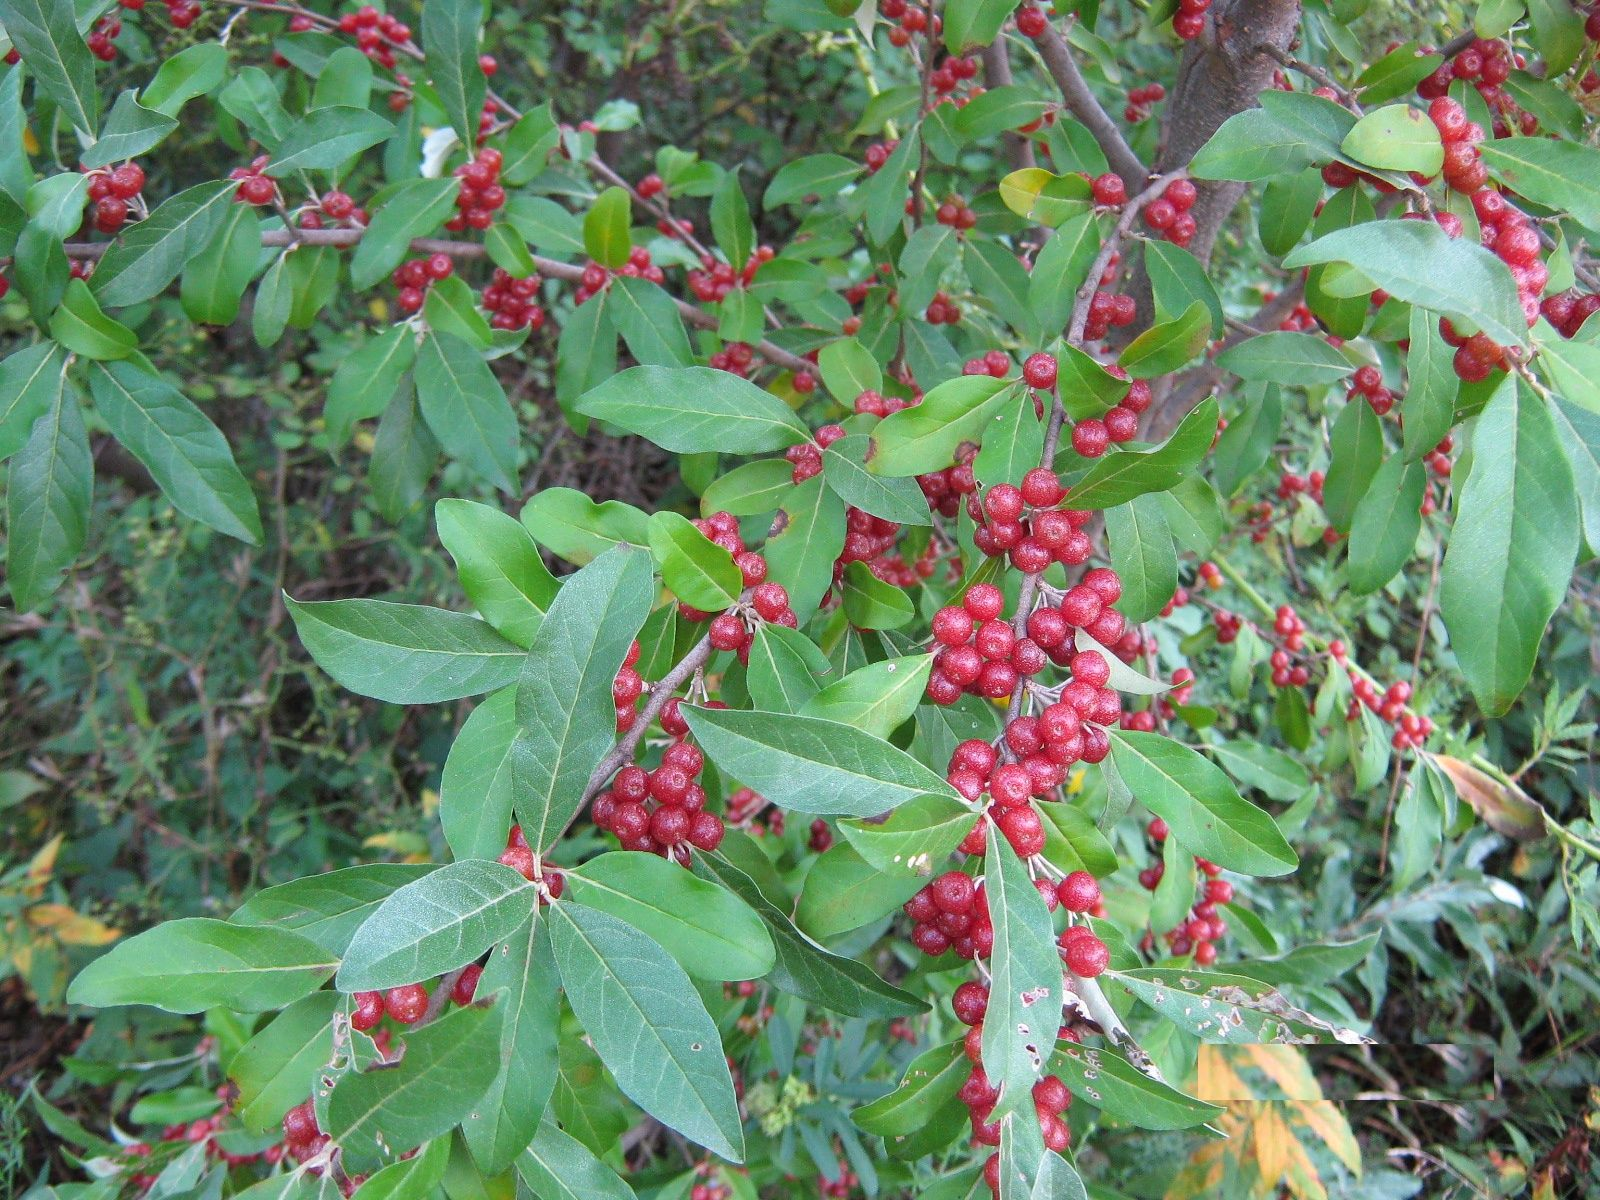 Autumn Olive Is An Attractive Shrub Its Bright Red Berries Stand Out Among The Silvery Green Leaves Autumn Olive Invasive Plants Garden Shrubs